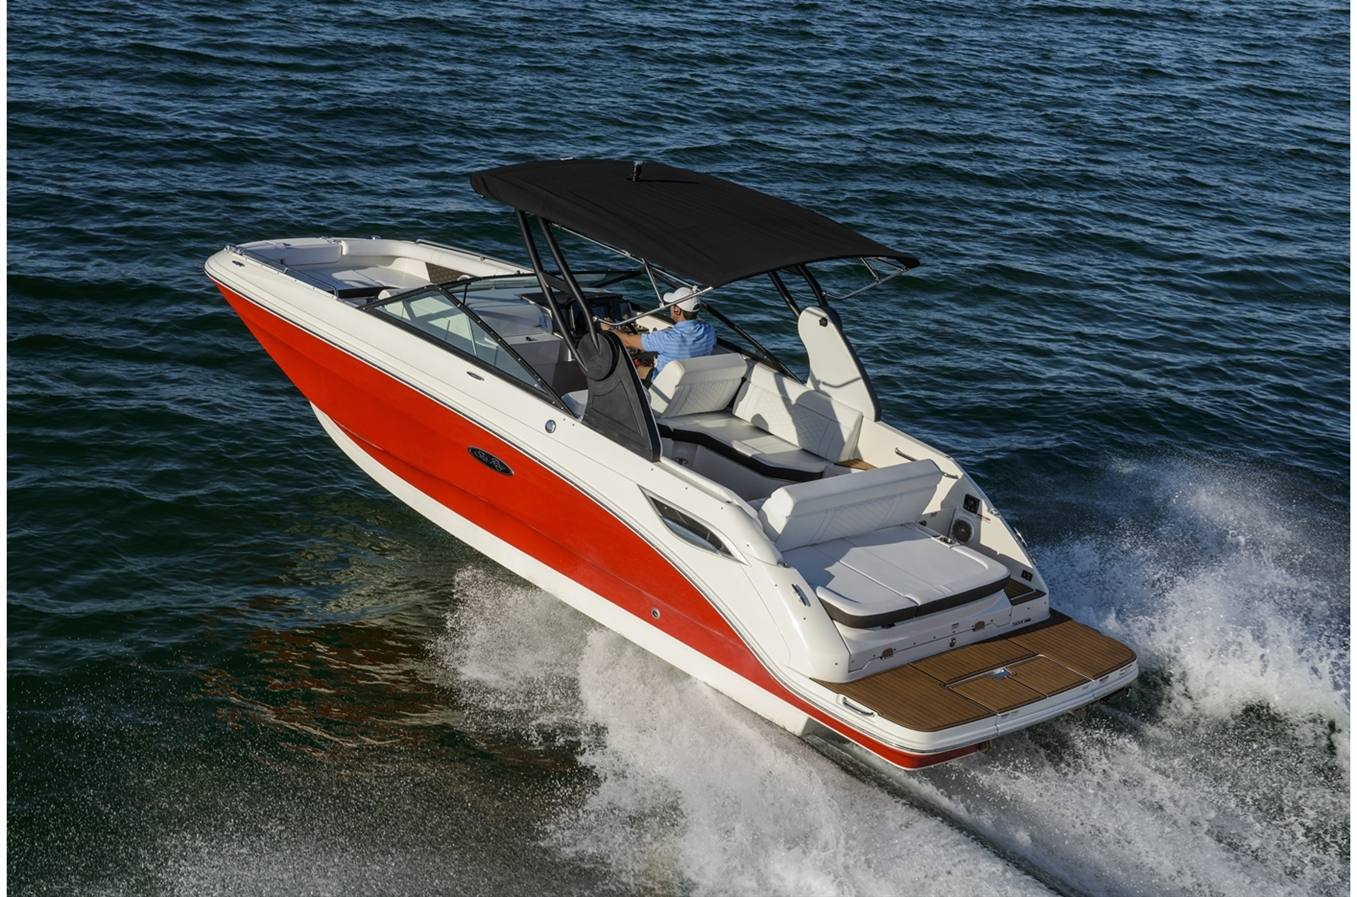 2018 Sea Ray SDX 250 for sale in Louisville, KY  Sea Ray of